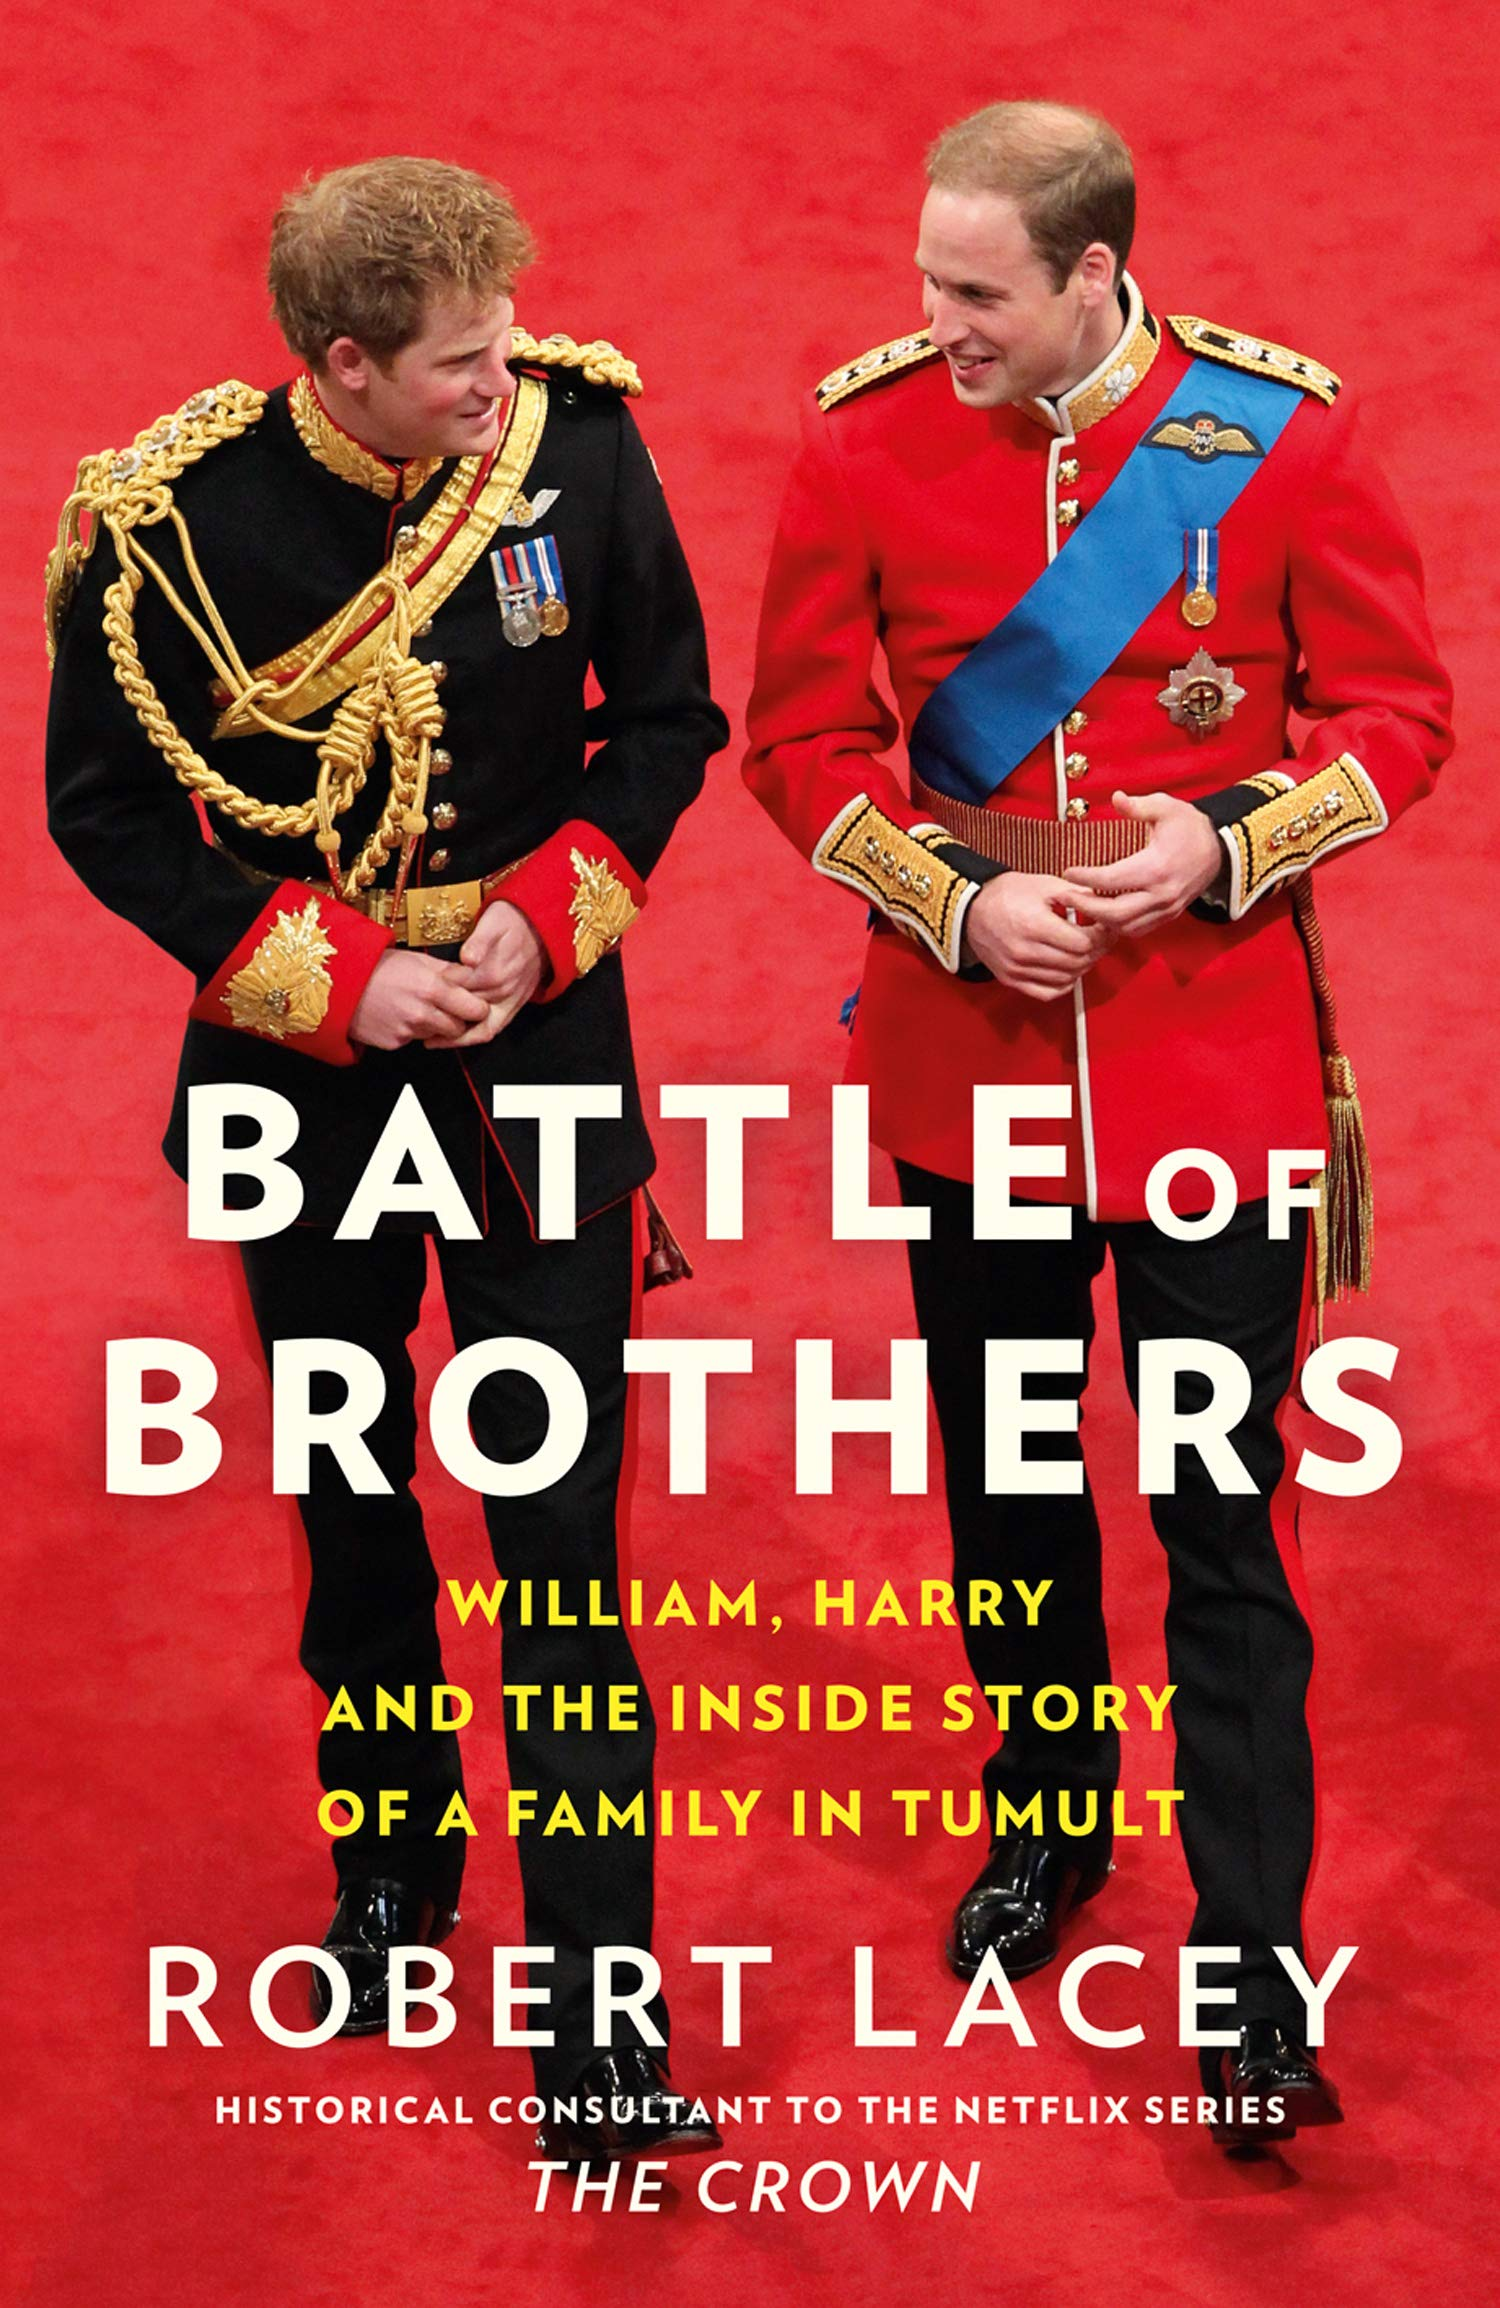 Battle of Brothers: William, Harry and the Inside Story of a Family in Tumult: 9780008424916: Amazon.com: Books